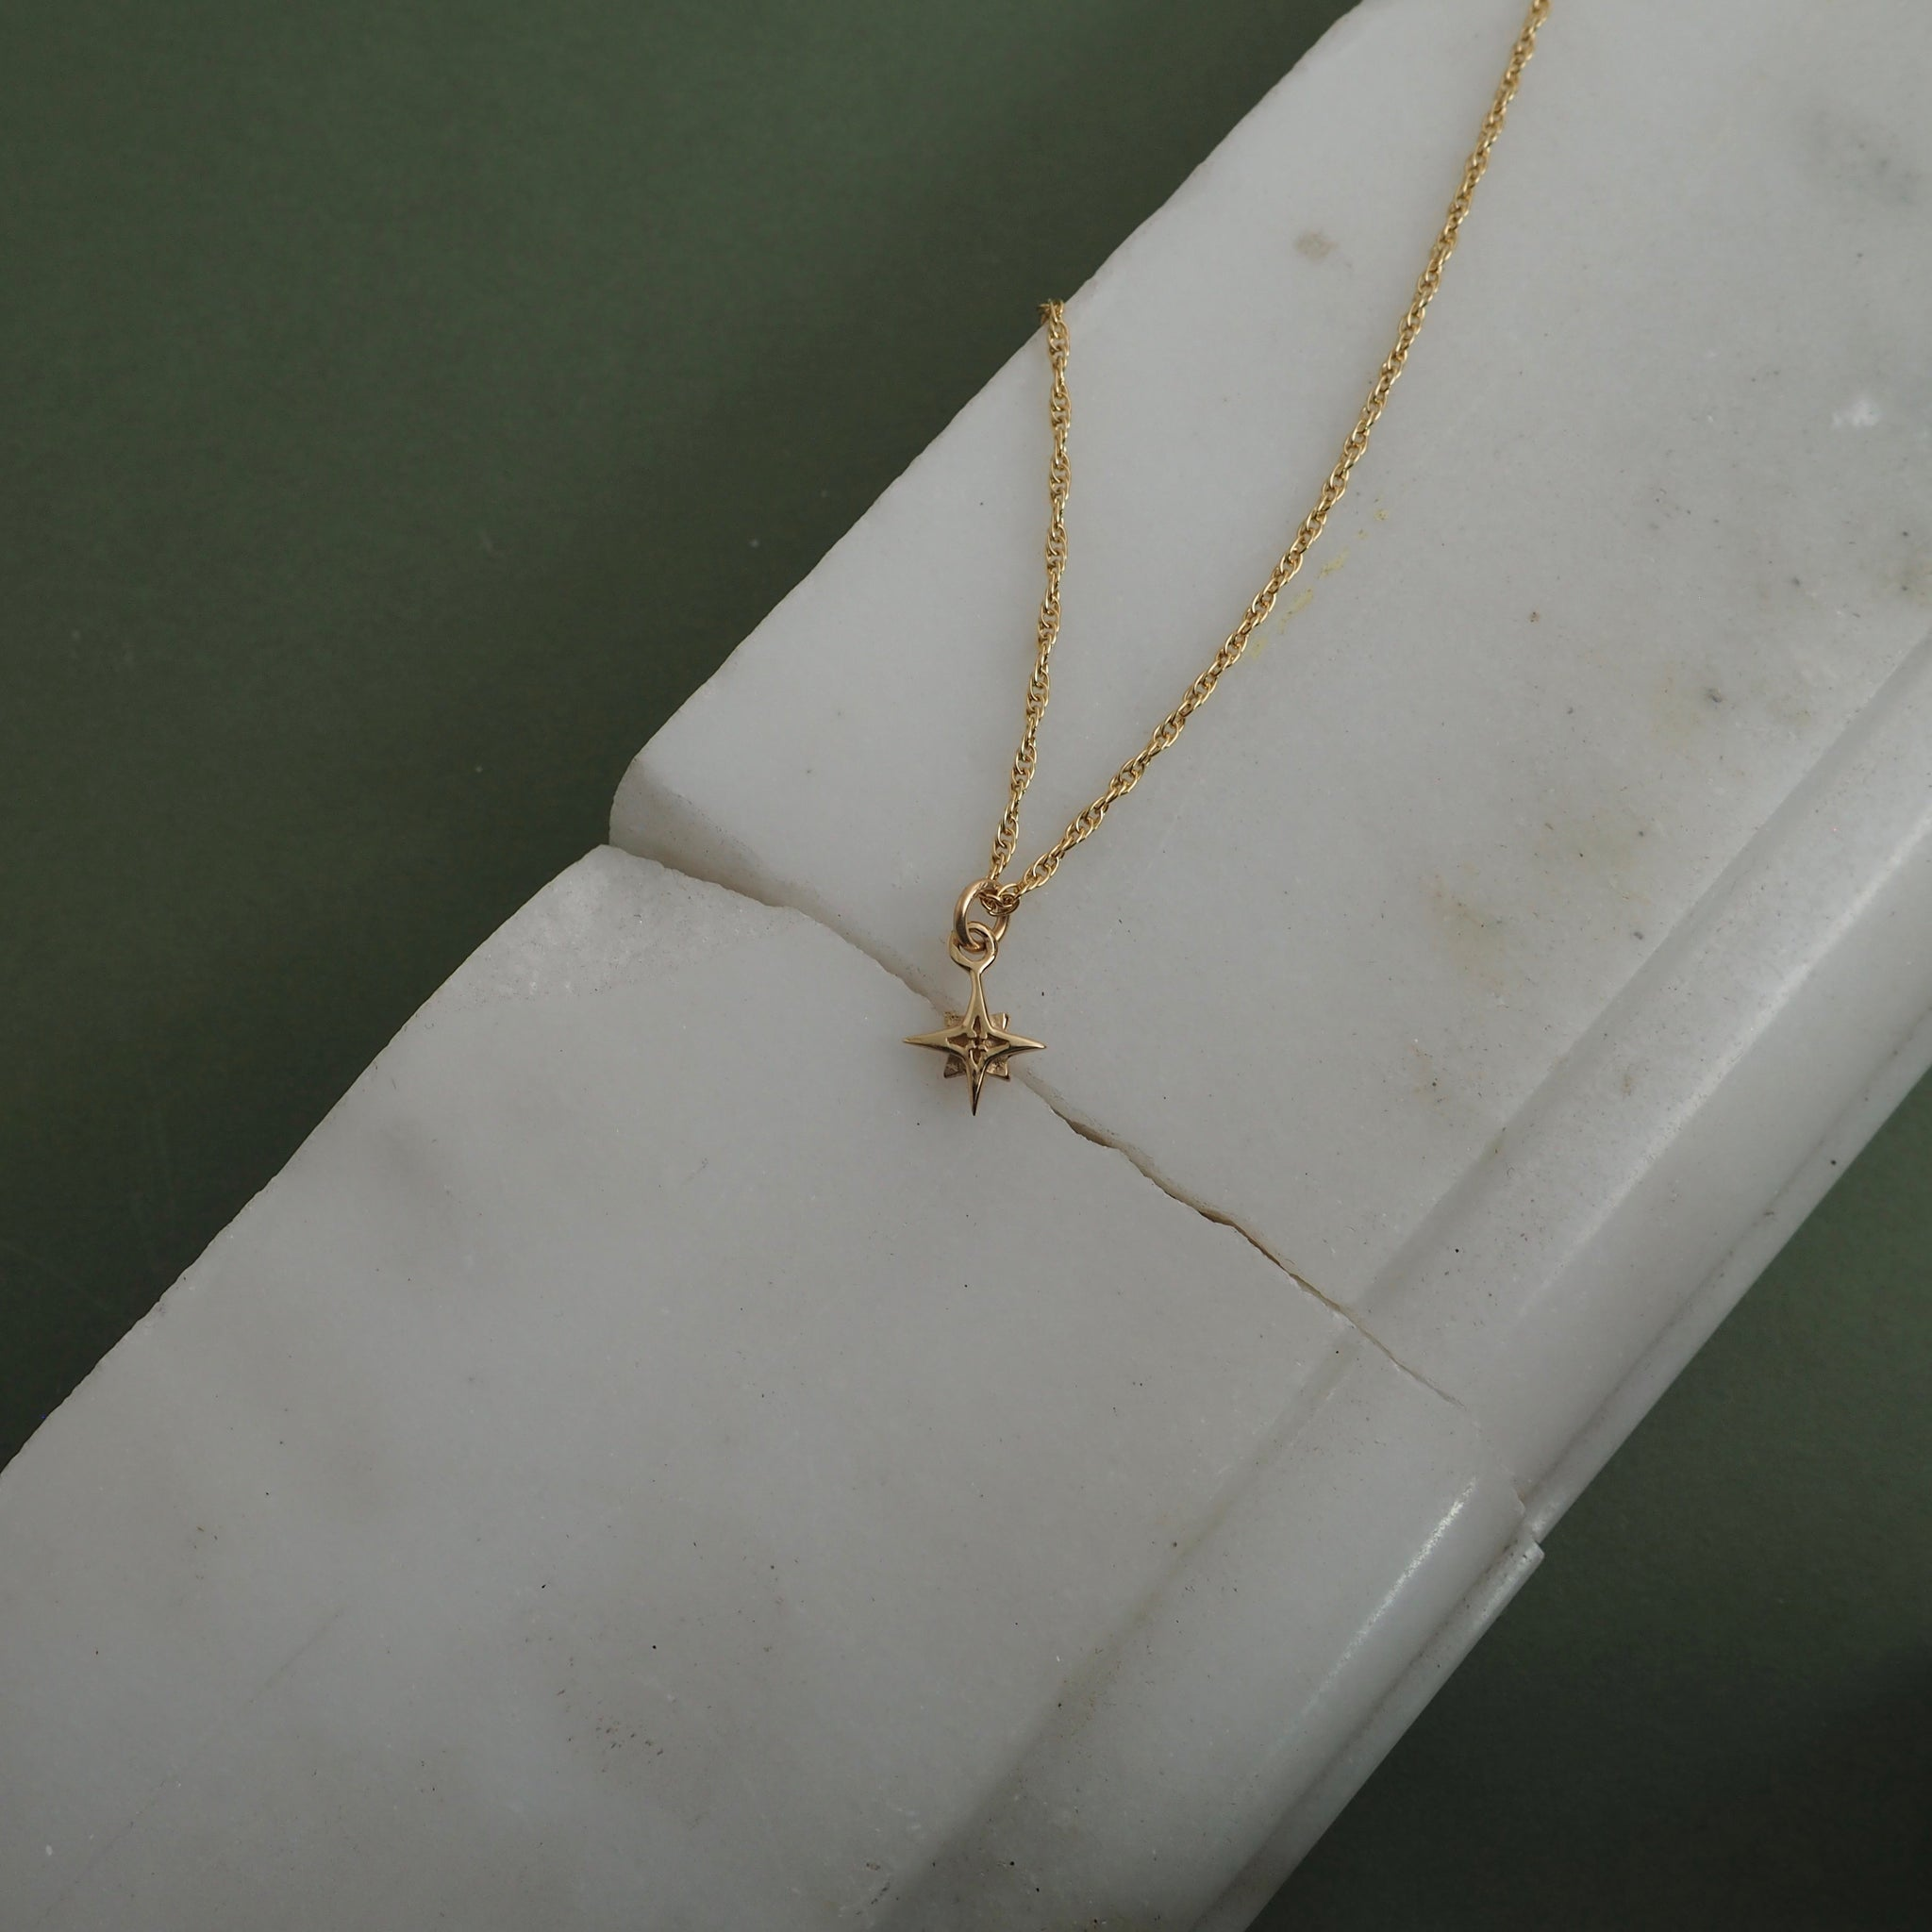 9ct Gold Small Compass Star Necklace by Yasmin Everley